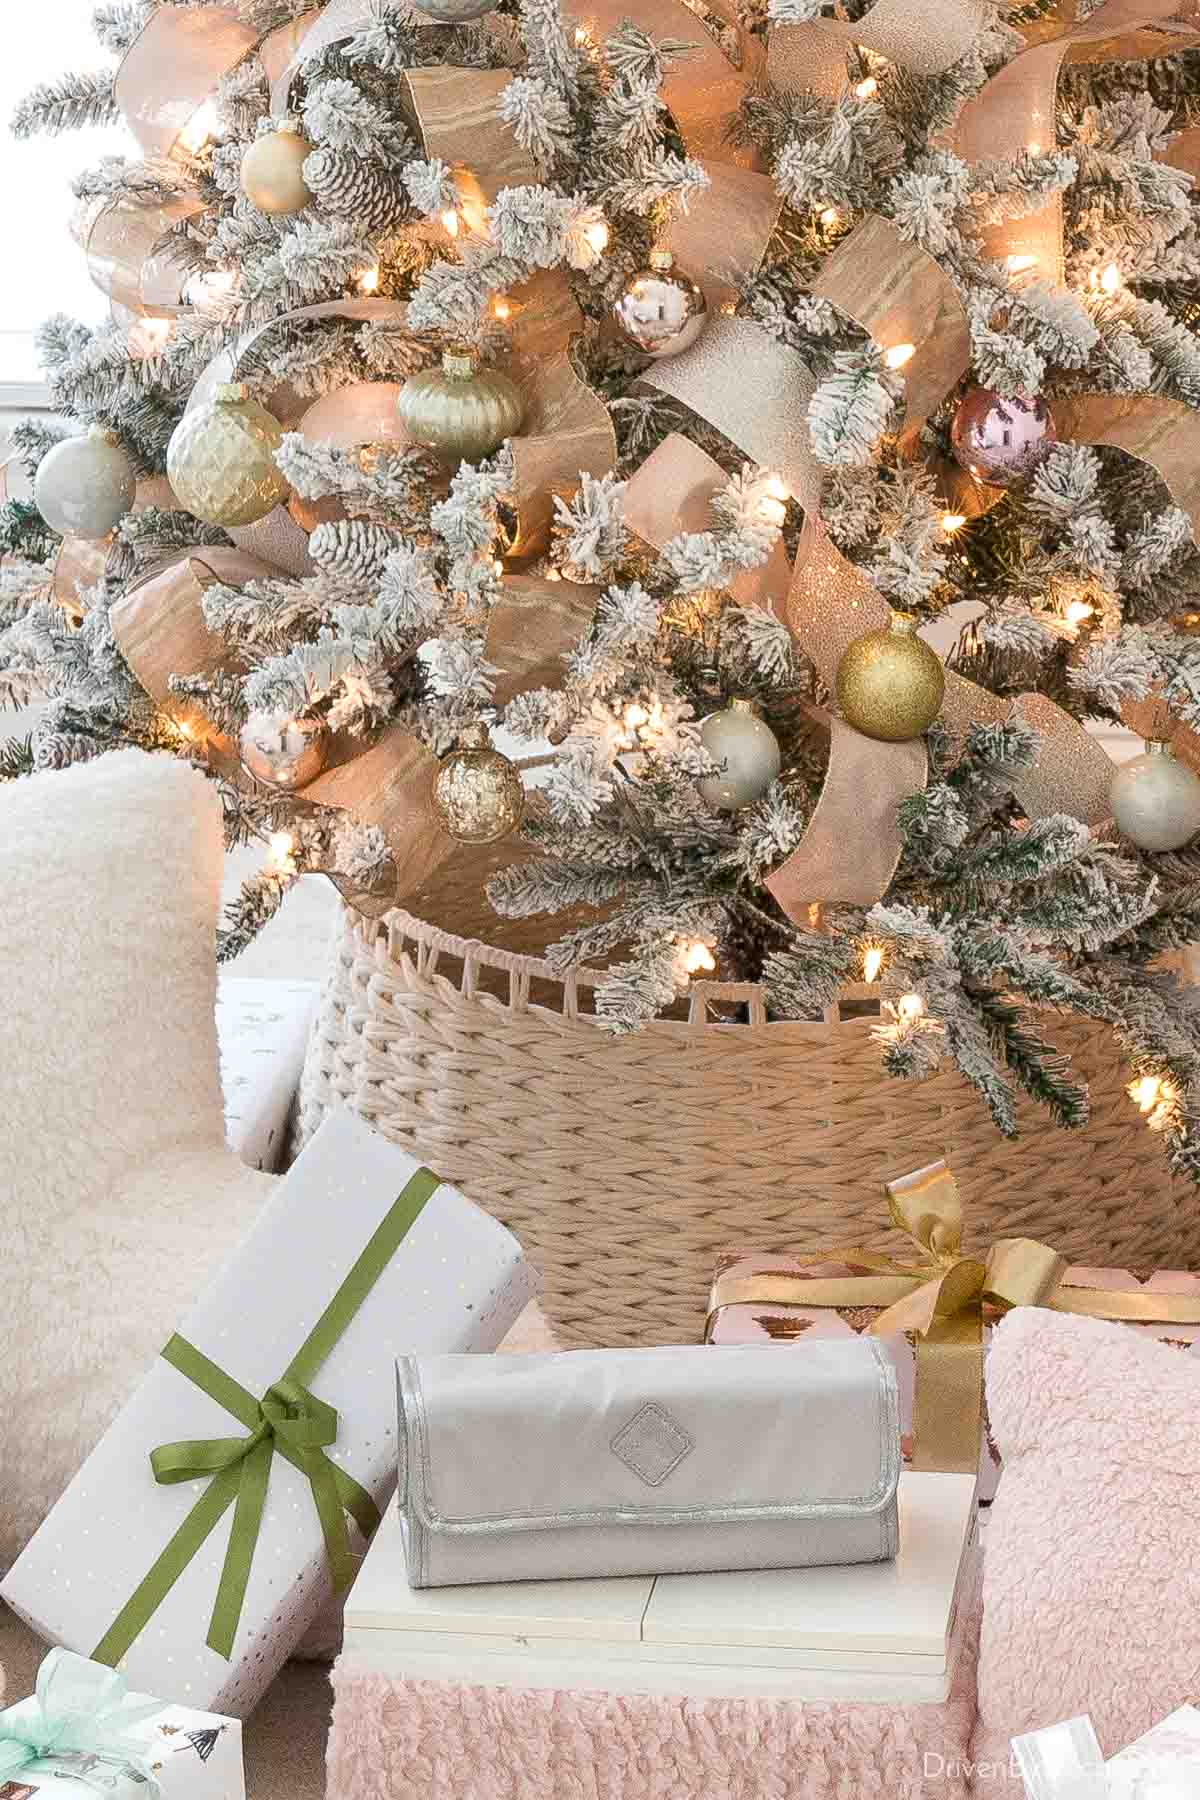 Love this white rope Christmas tree collar instead of a traditional skirt!